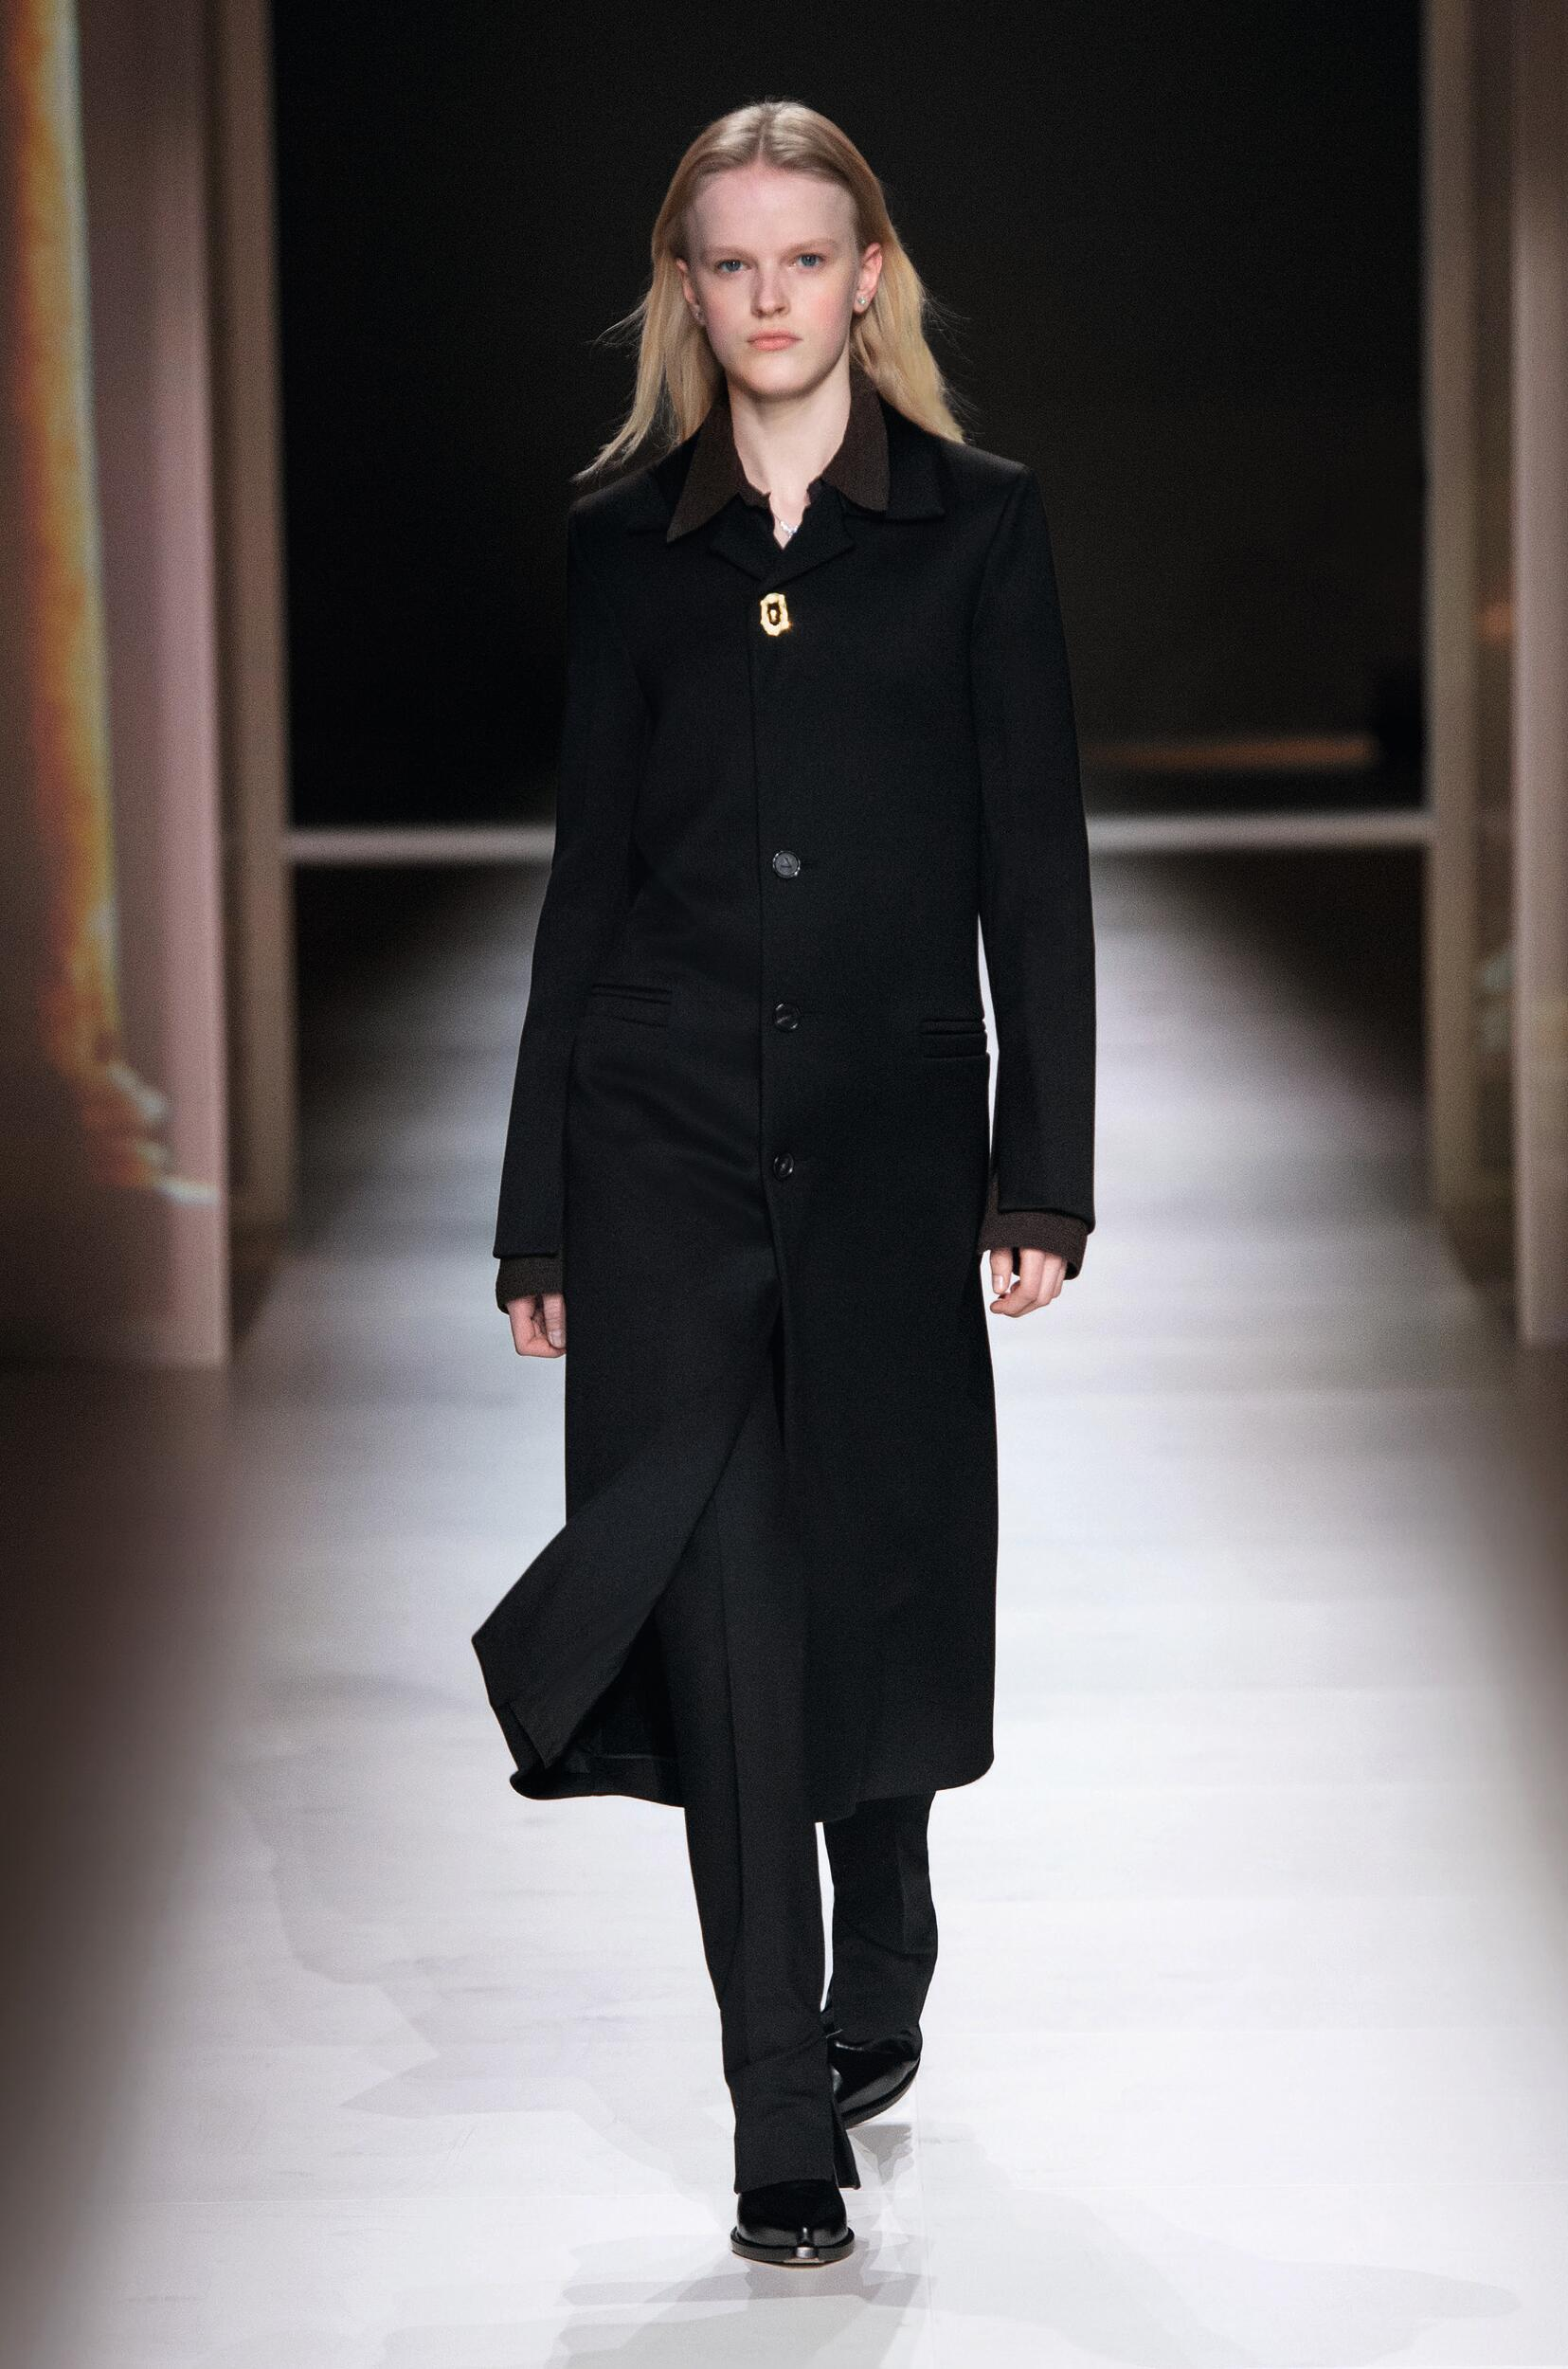 FW 2020-21 Fashion Show Bottega Veneta